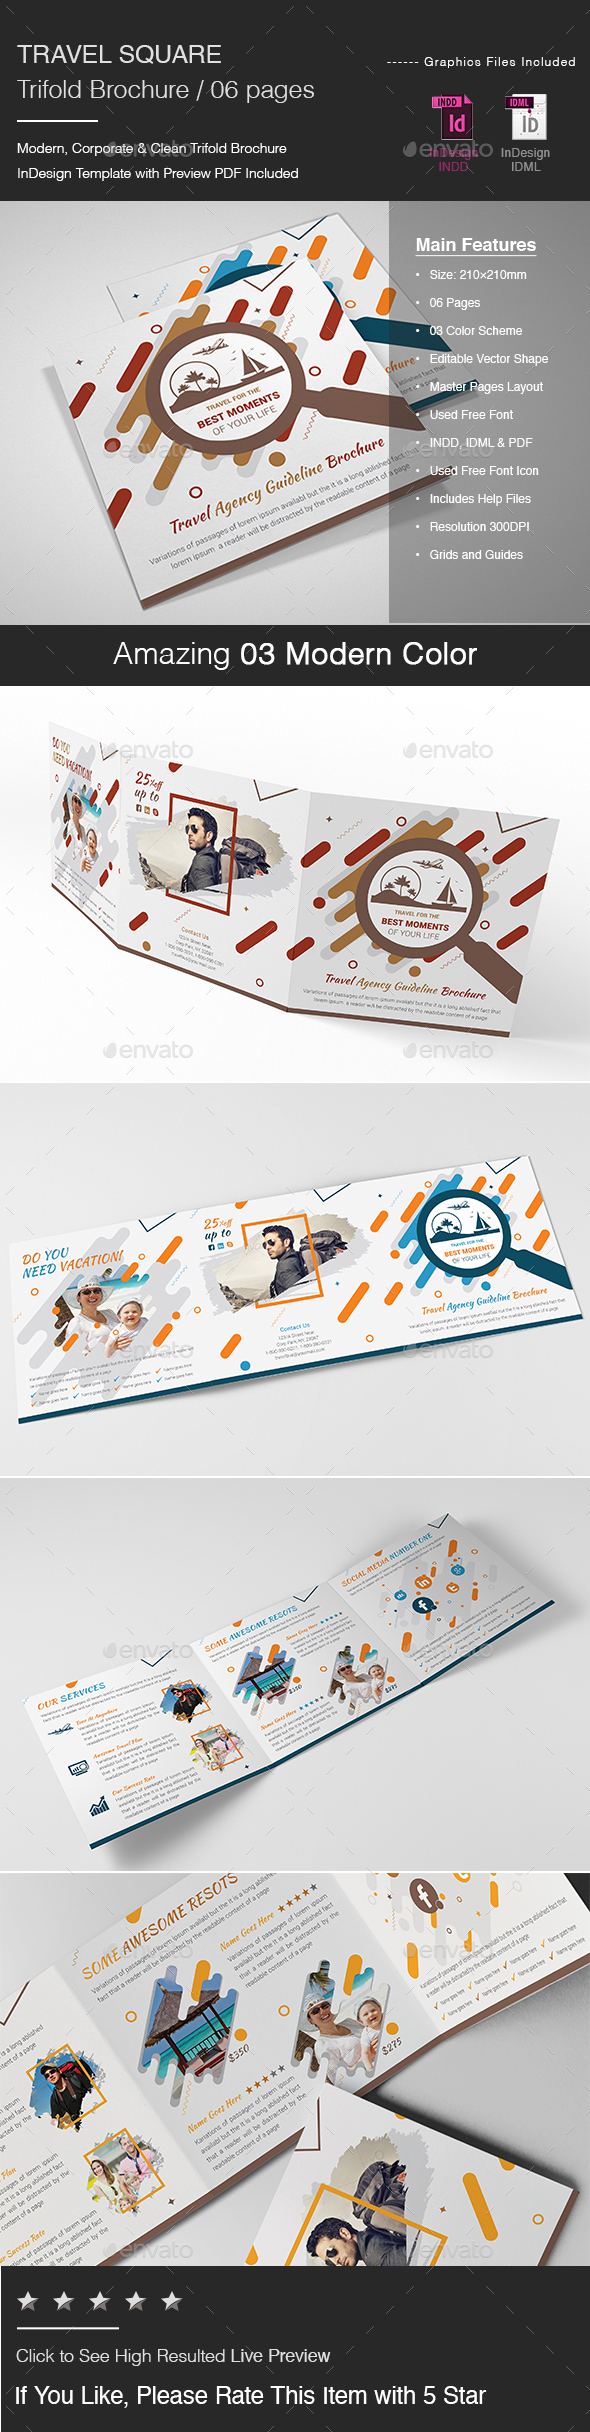 Travel Square Trifold Brochure - Brochures Print Templates